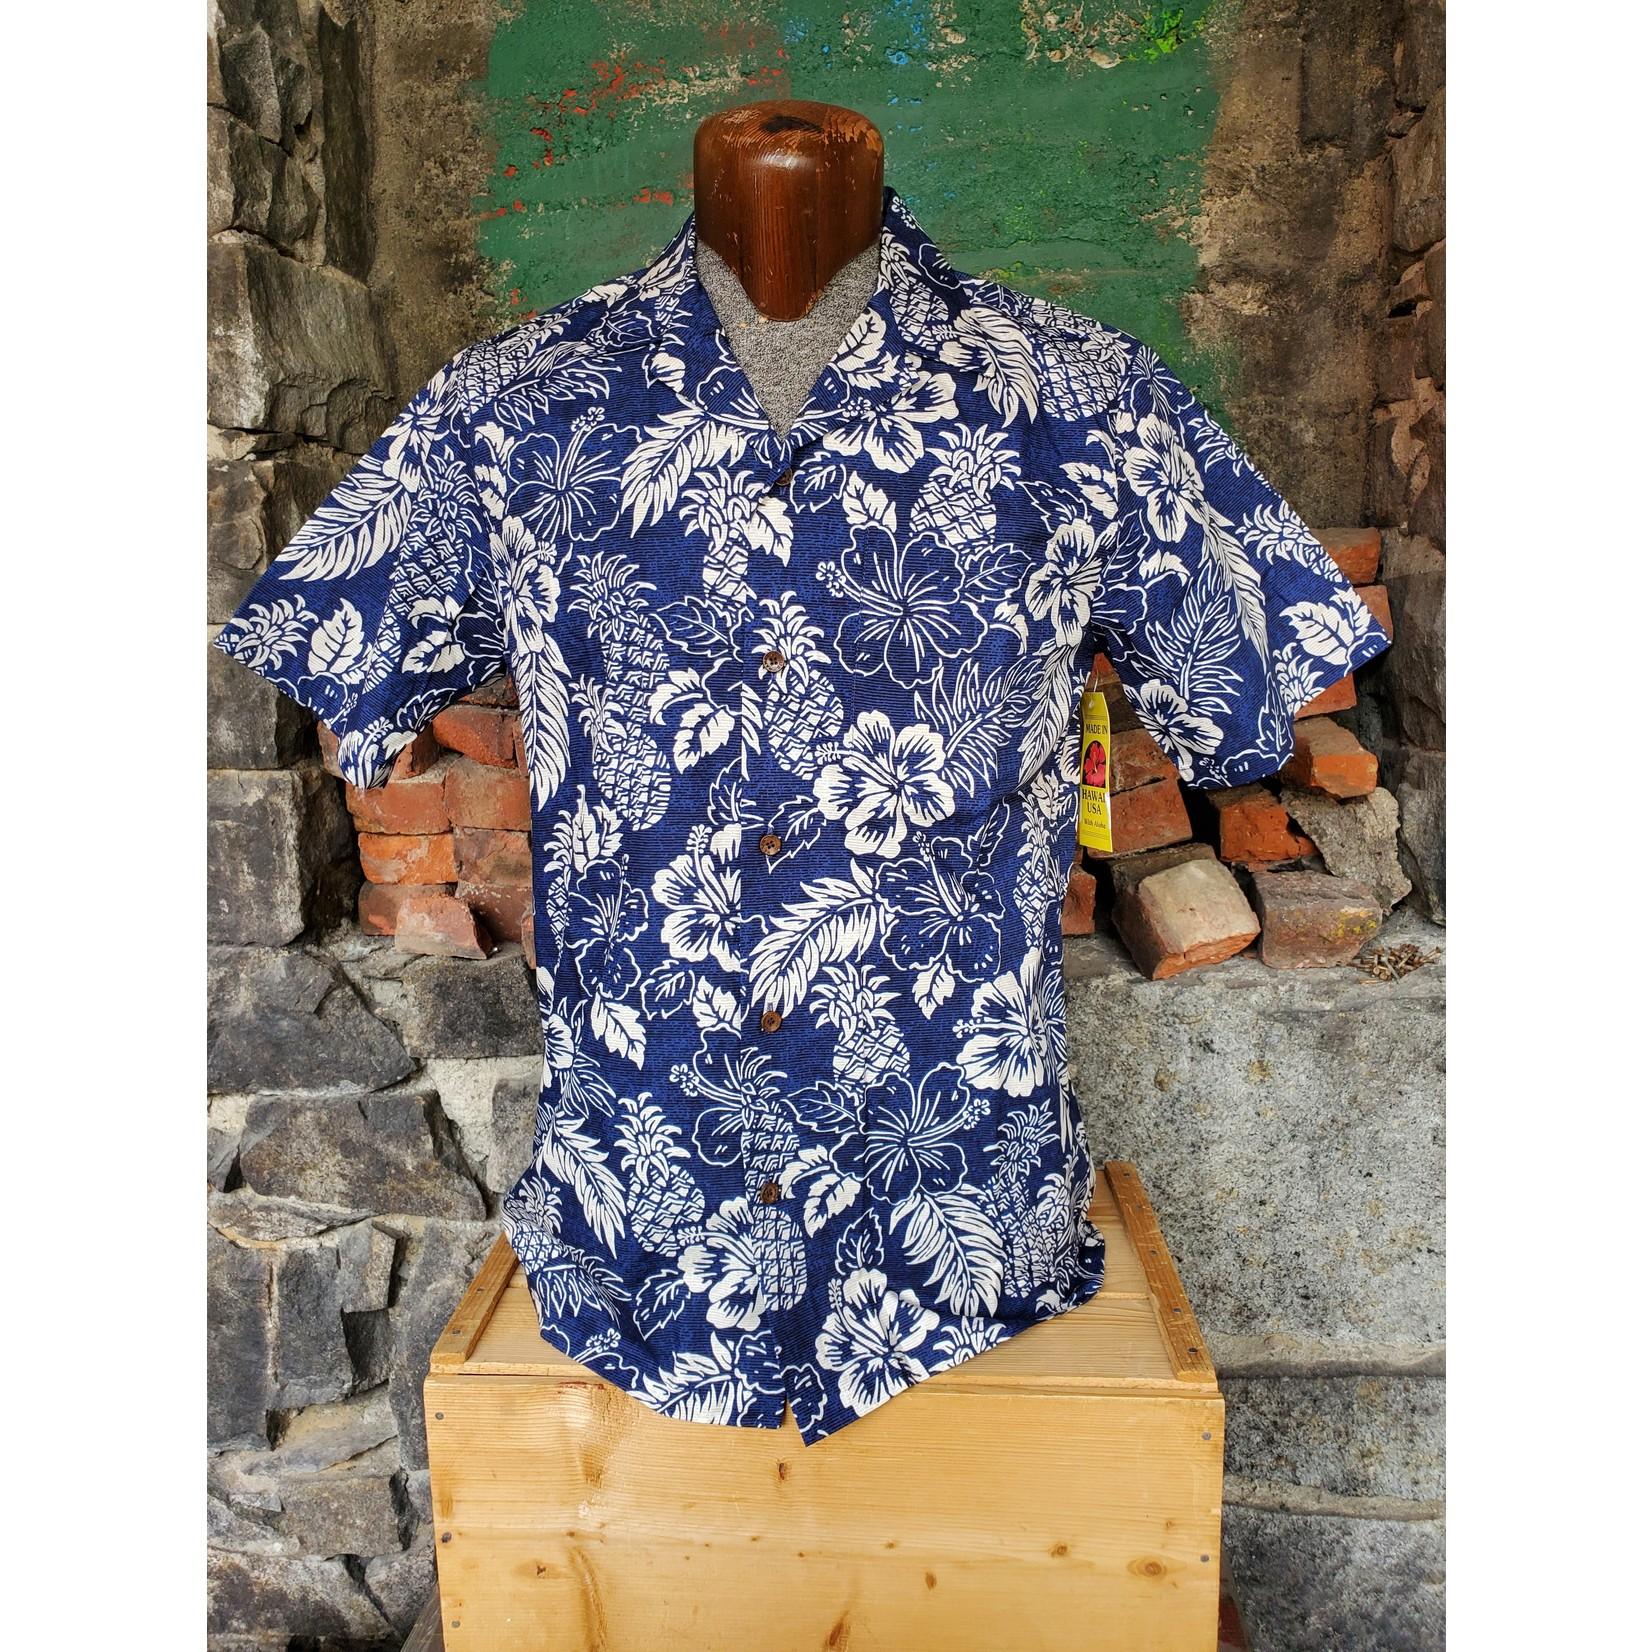 RJC Authentic Hawaiian Shirt - Classic Navy Floral